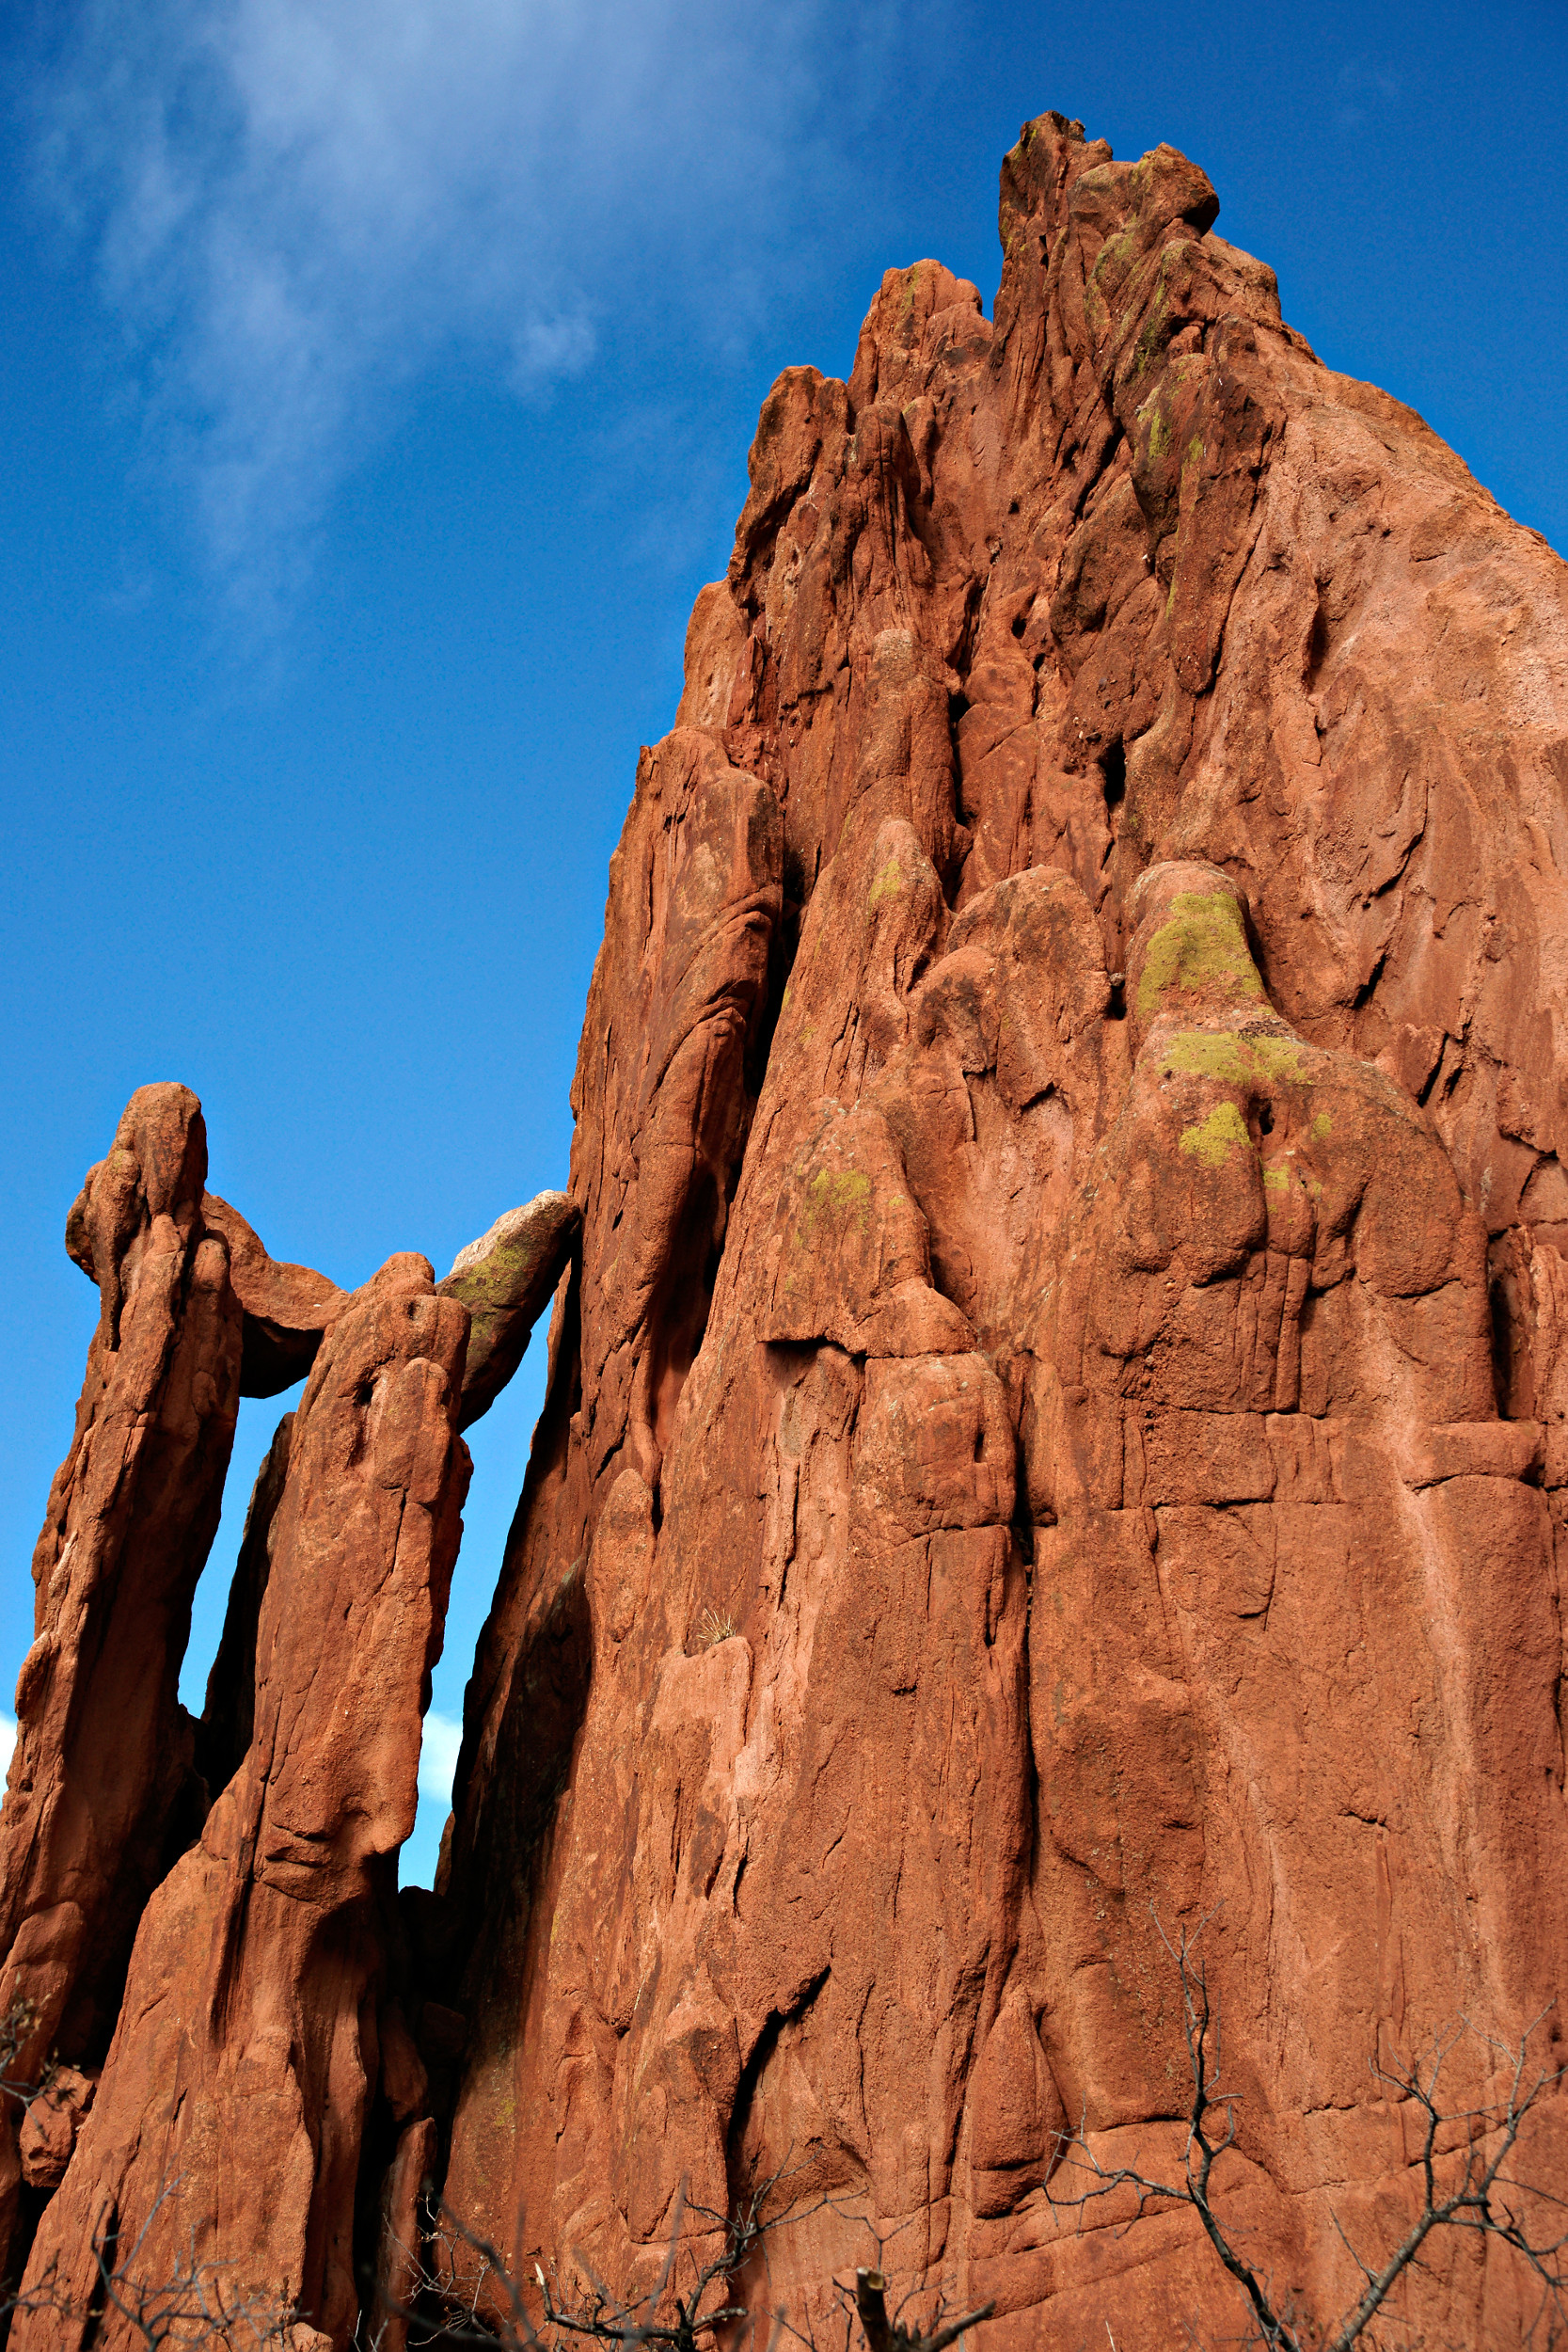 Cathedral Spires at Garden of the Gods, Peak, Storm, Springs, Spires, HQ Photo